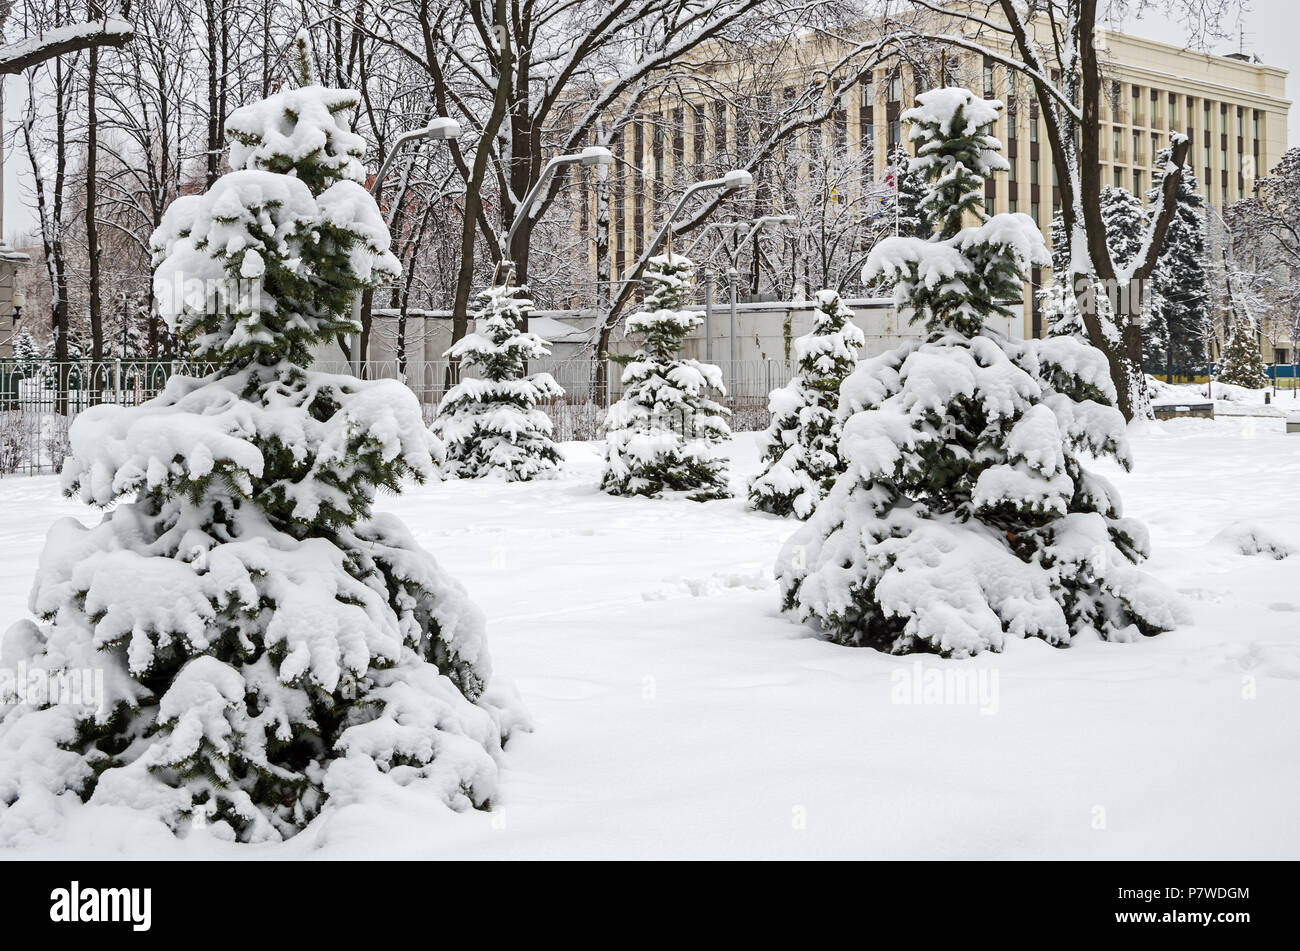 Grove of young spruces against the background of municipal buildings - Stock Image